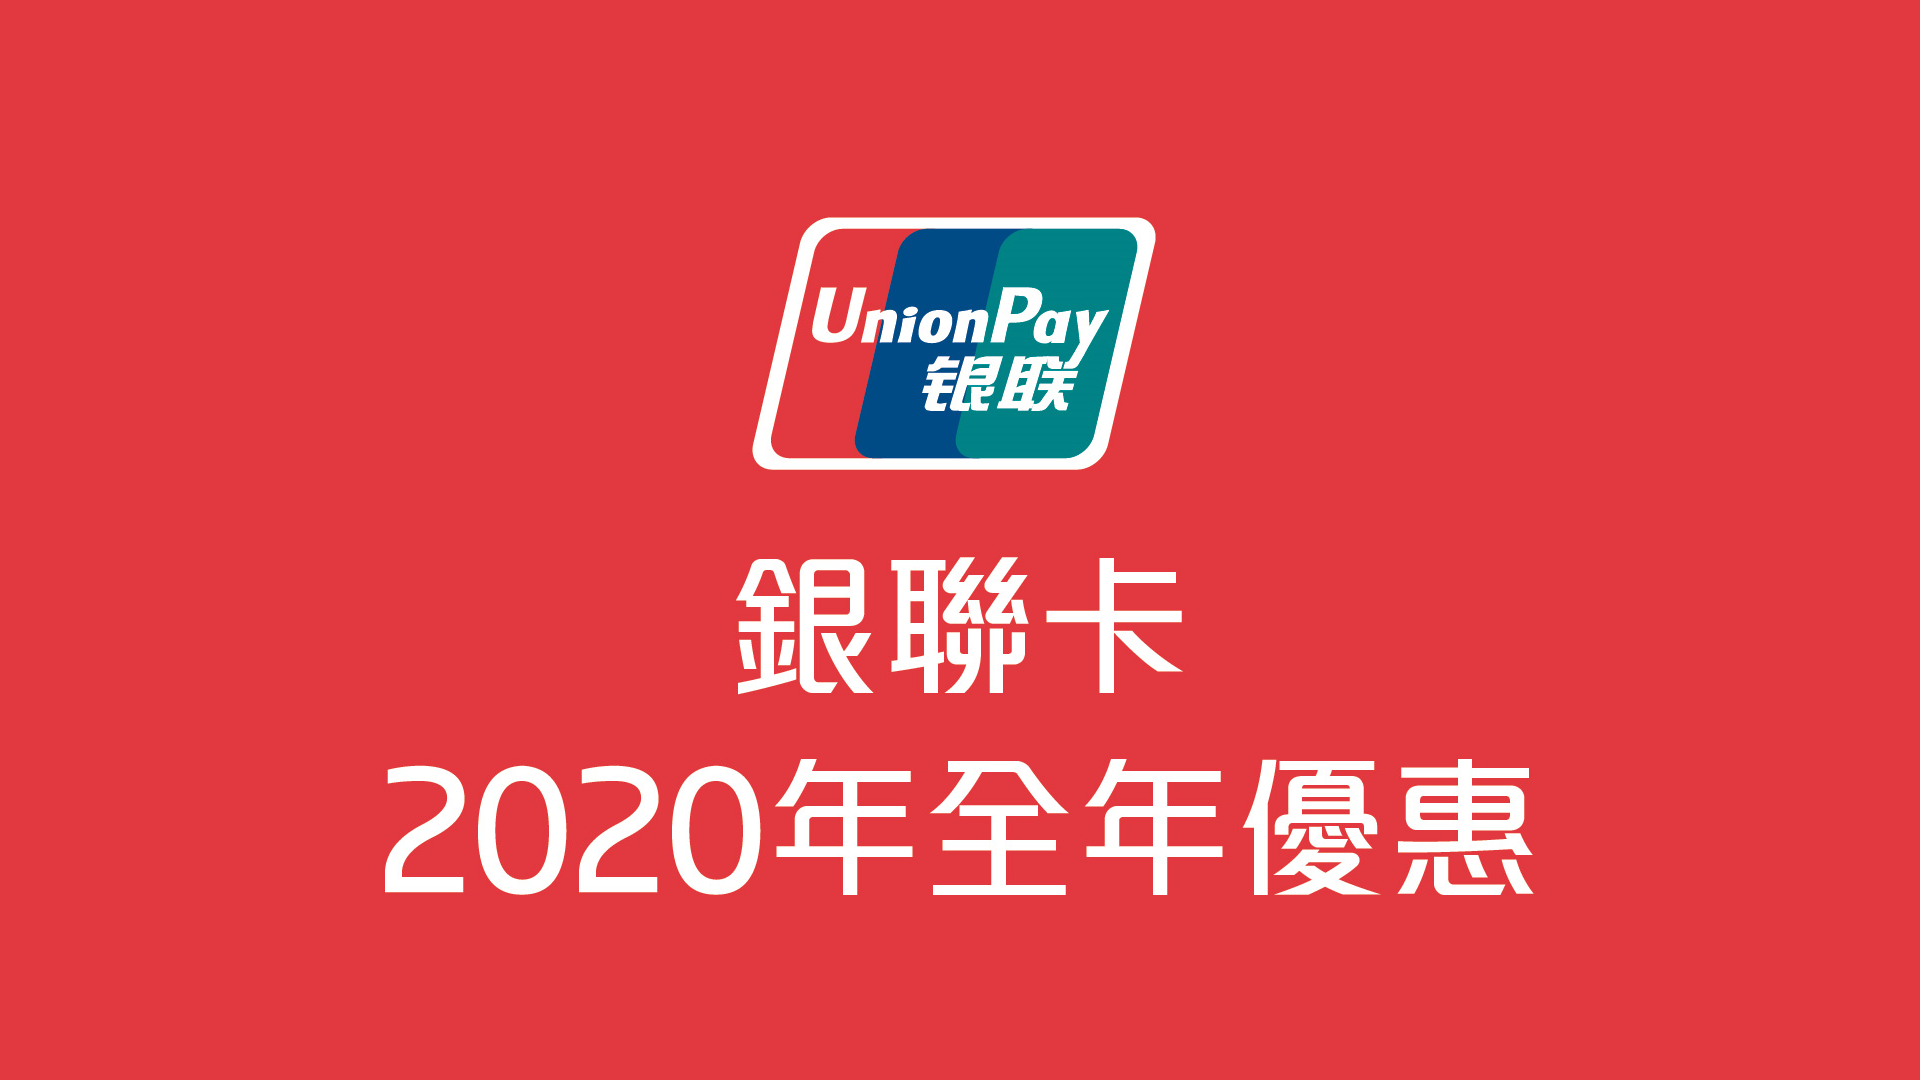 Shopping Privileges with UnionPay Card 2020